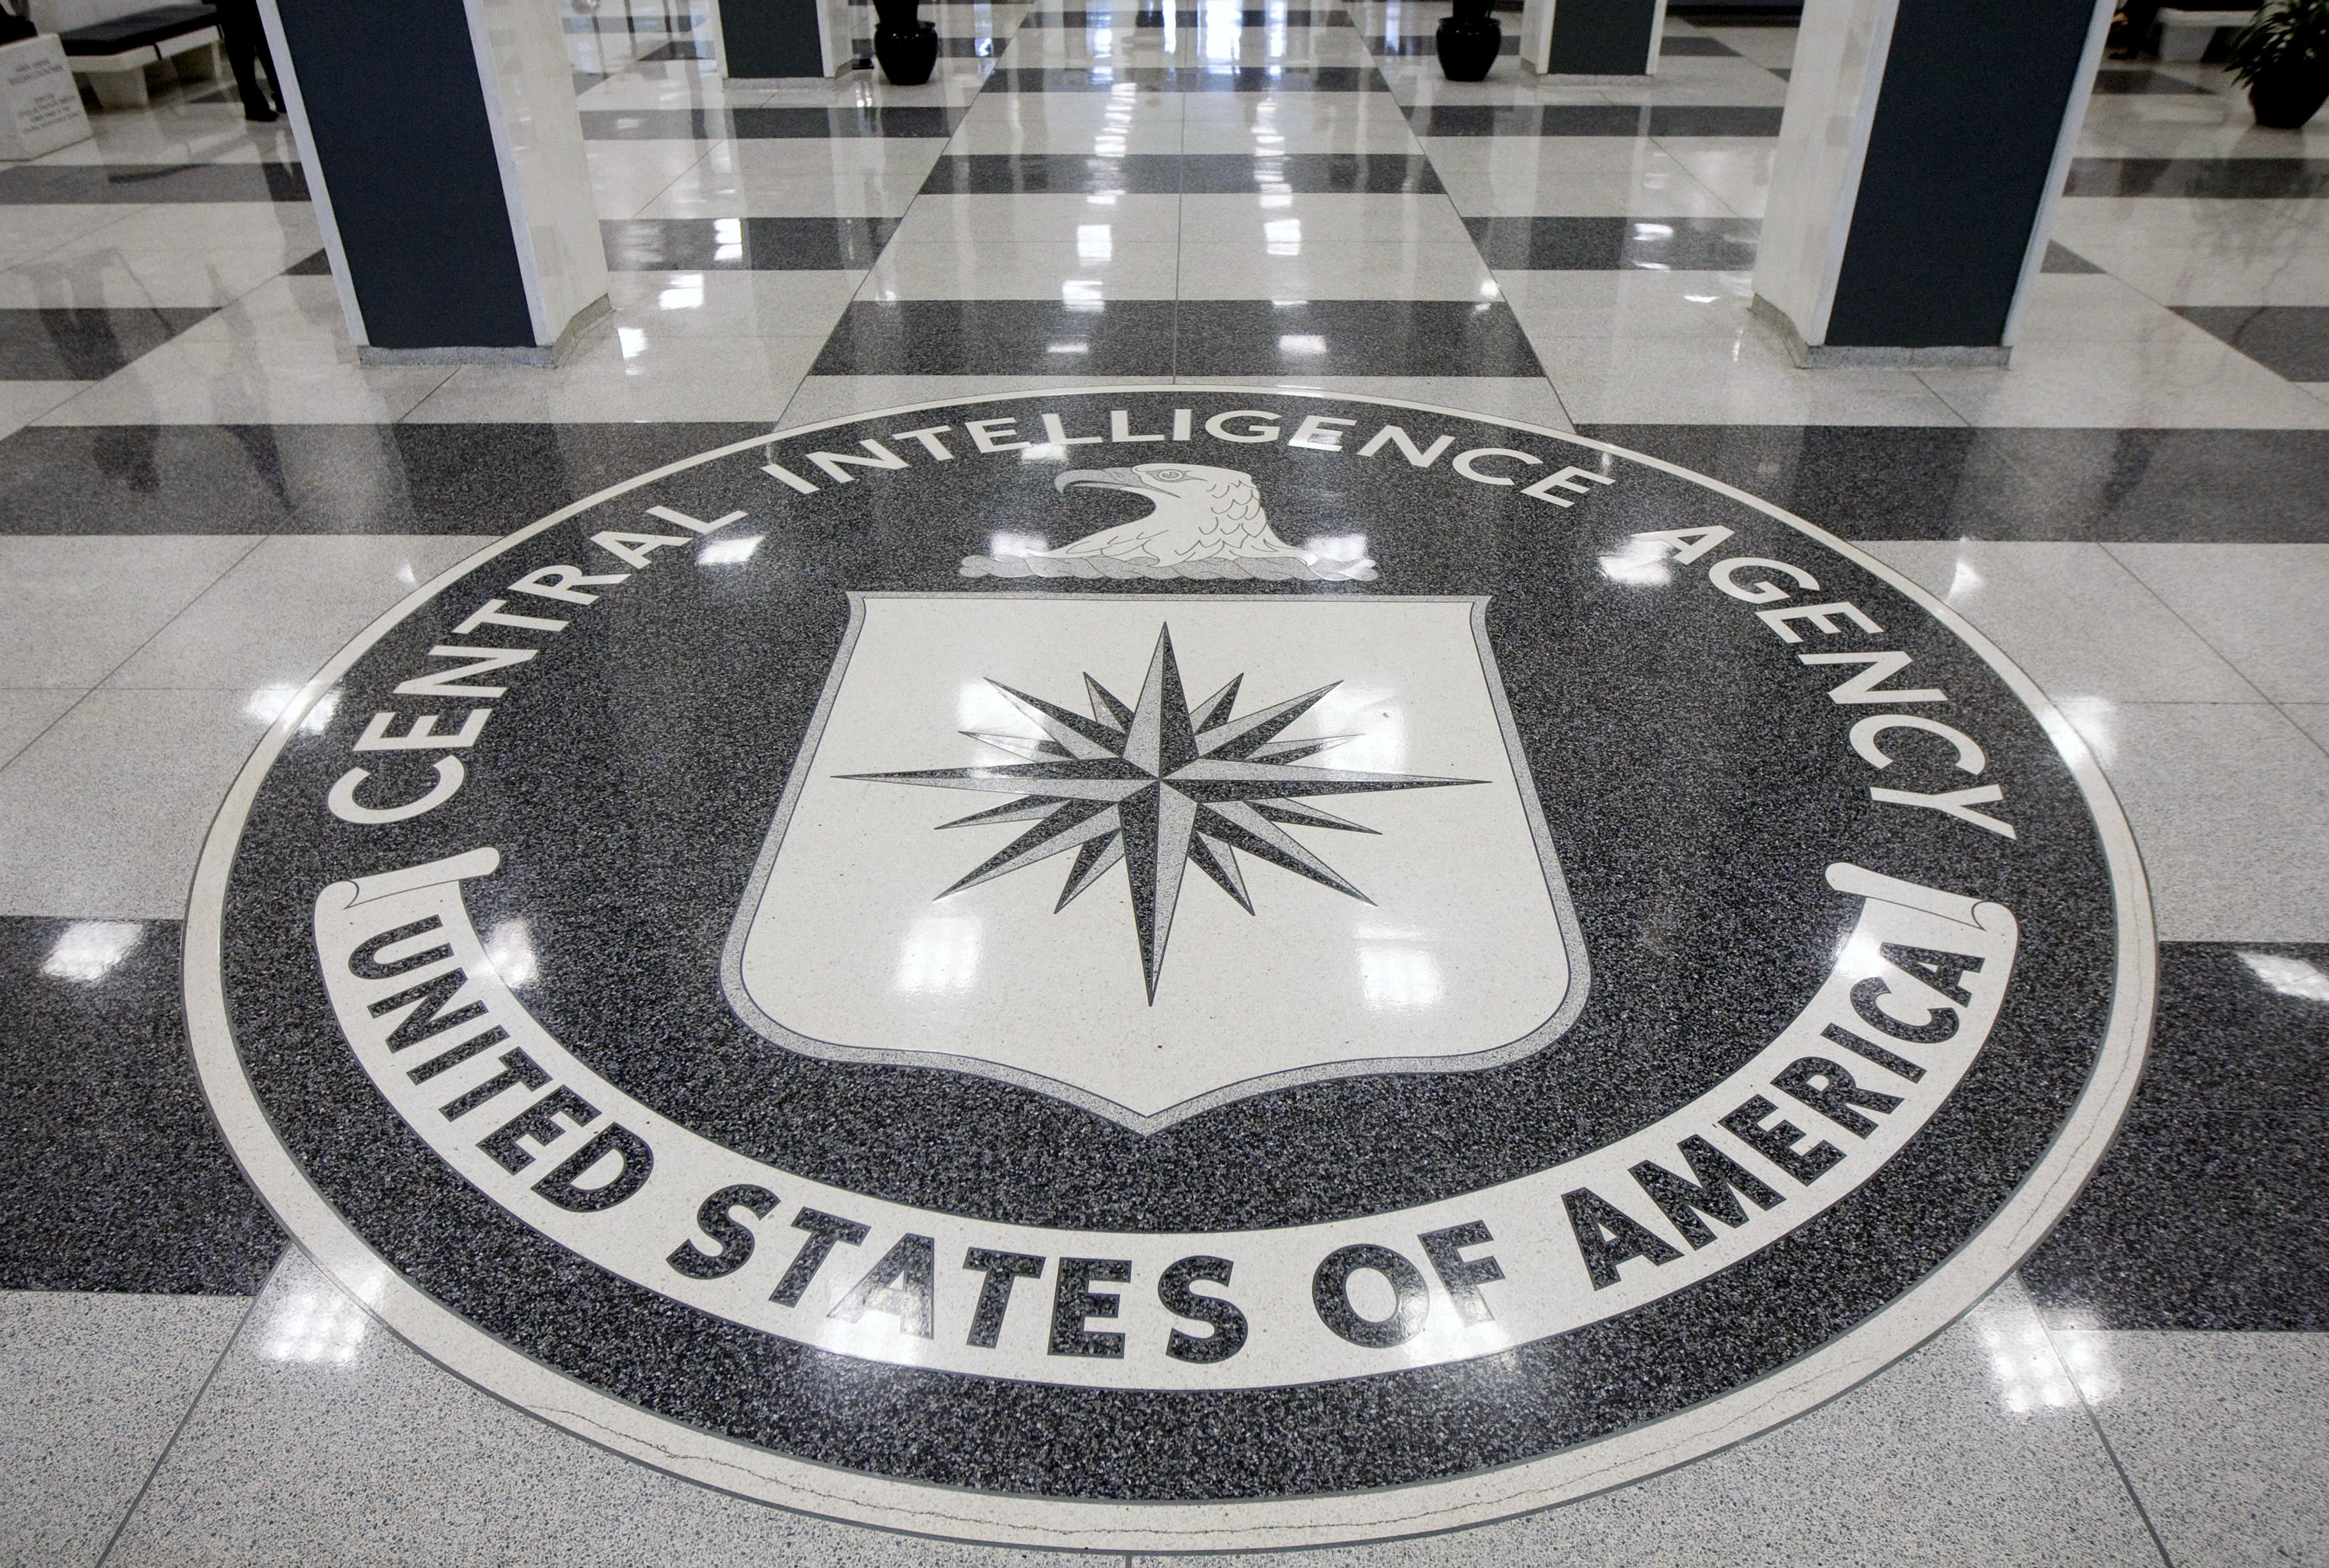 9/11 supposed to be a wake-up call for U.S. intelligence agencies